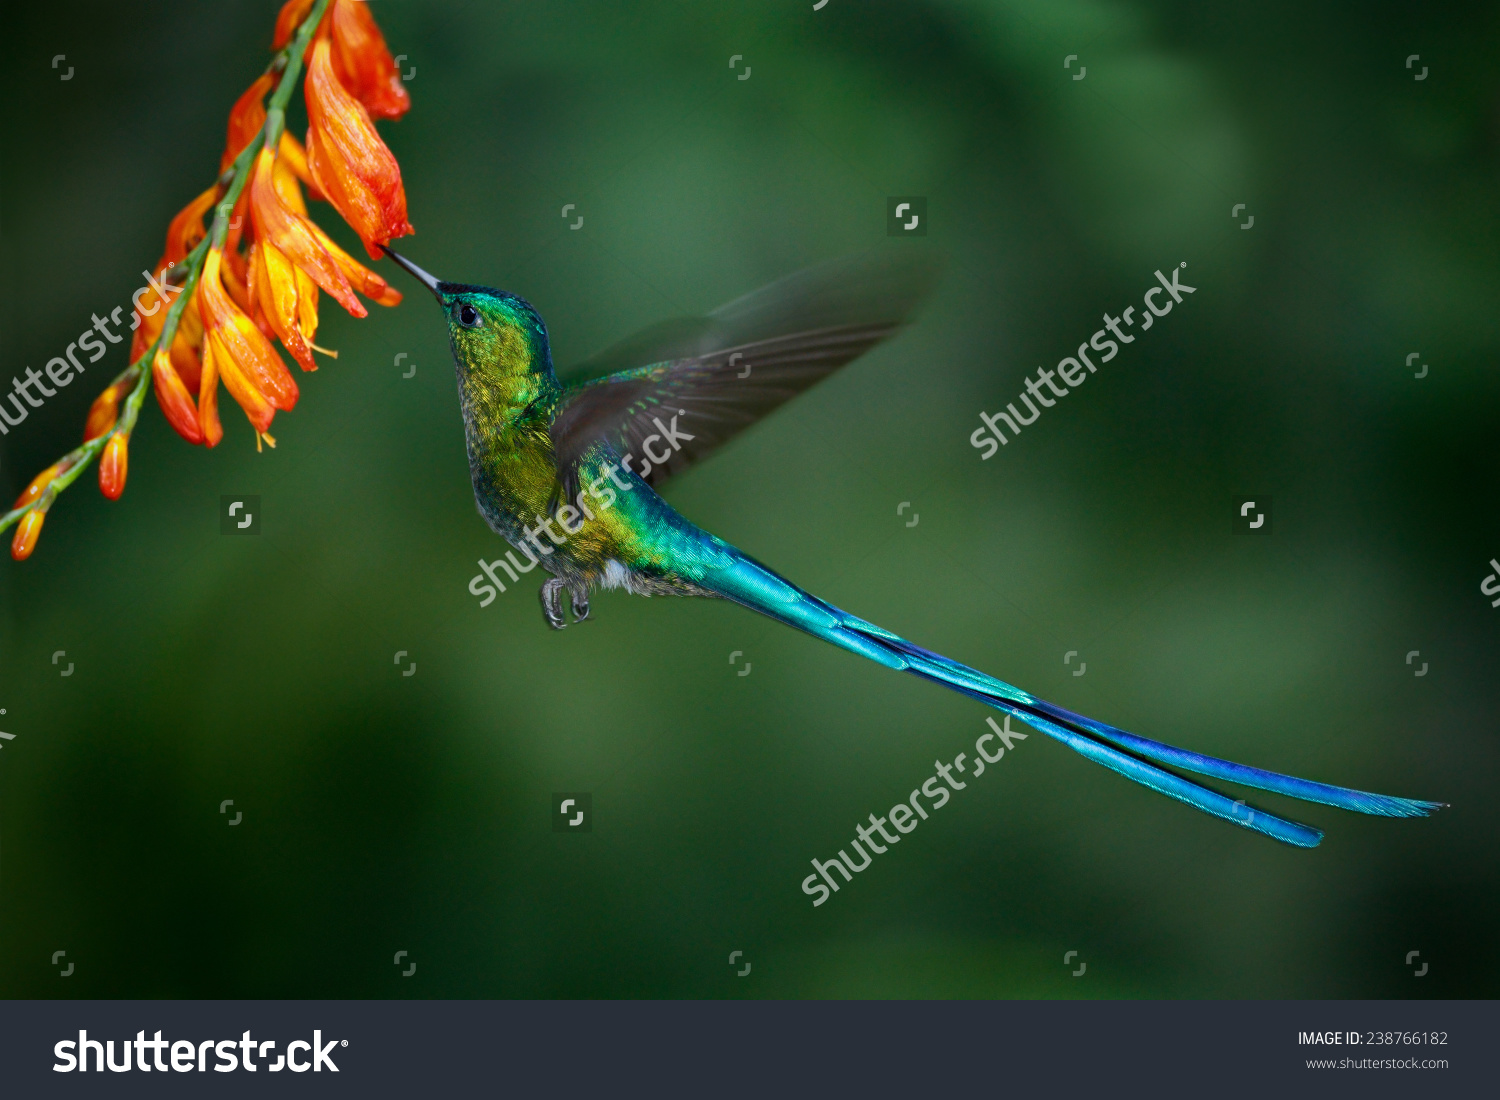 Long-tailed Sylph clipart #10, Download drawings